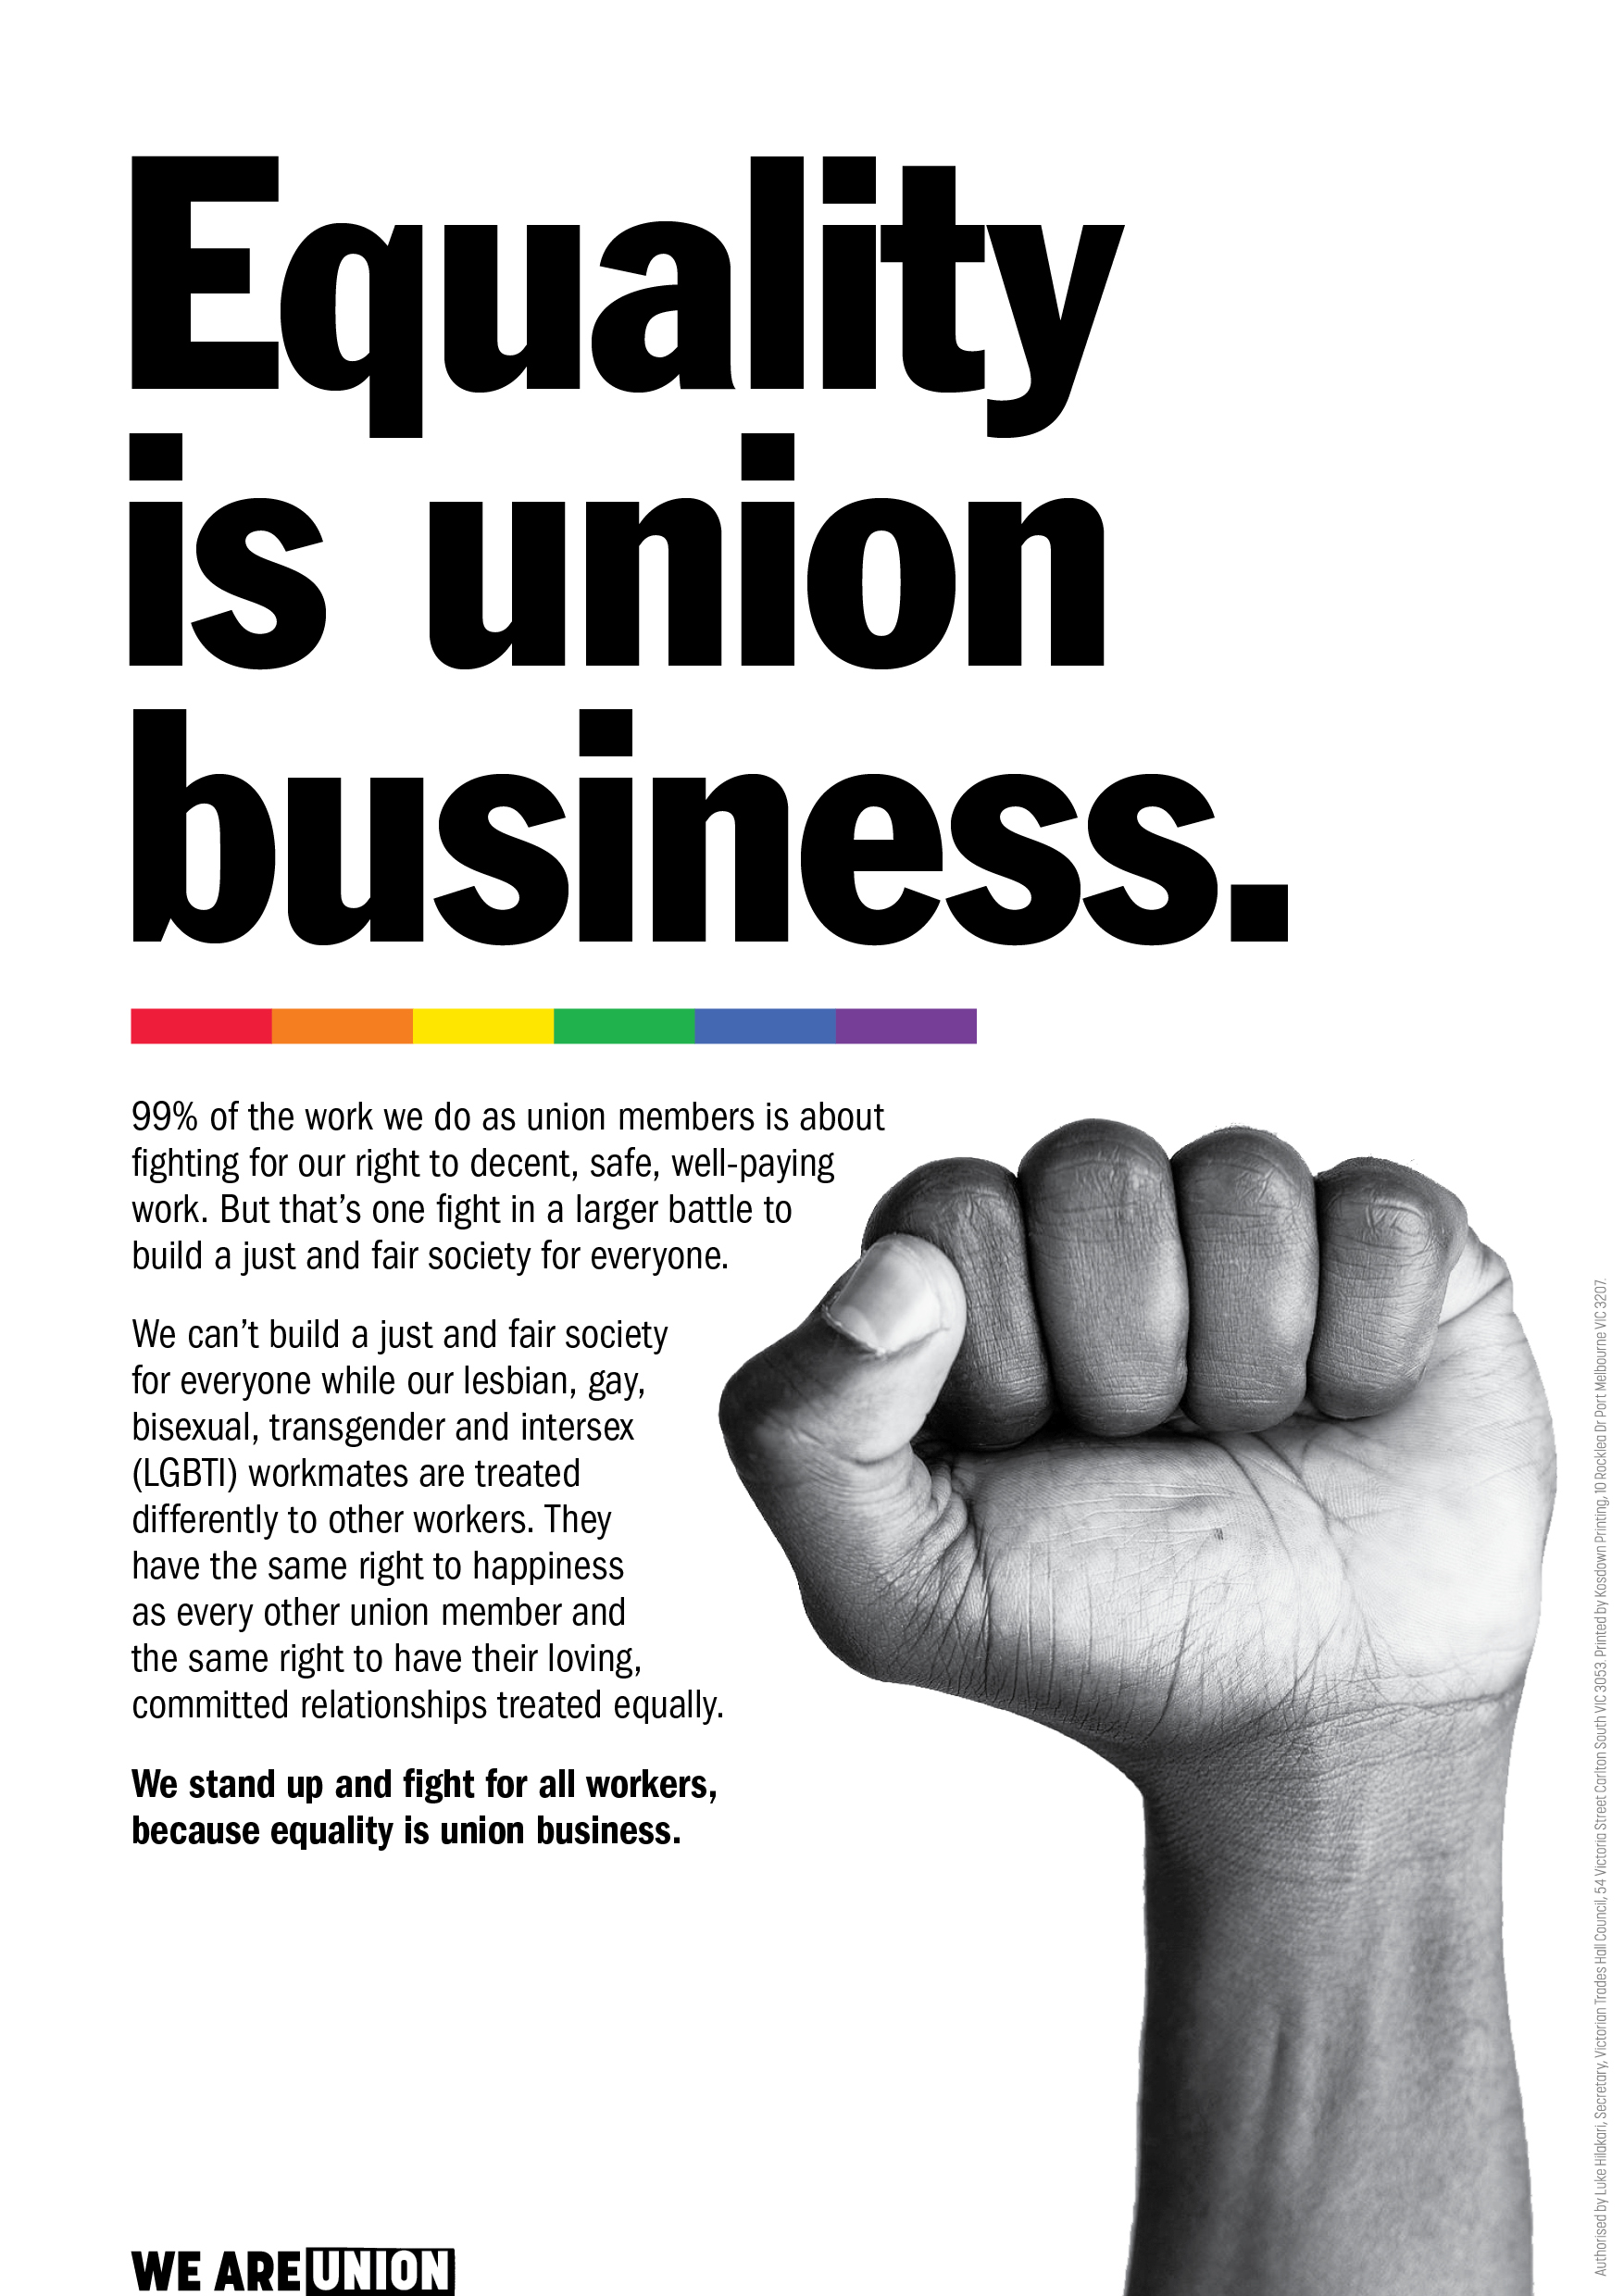 Equality_is_union_business_A3_web.jpg